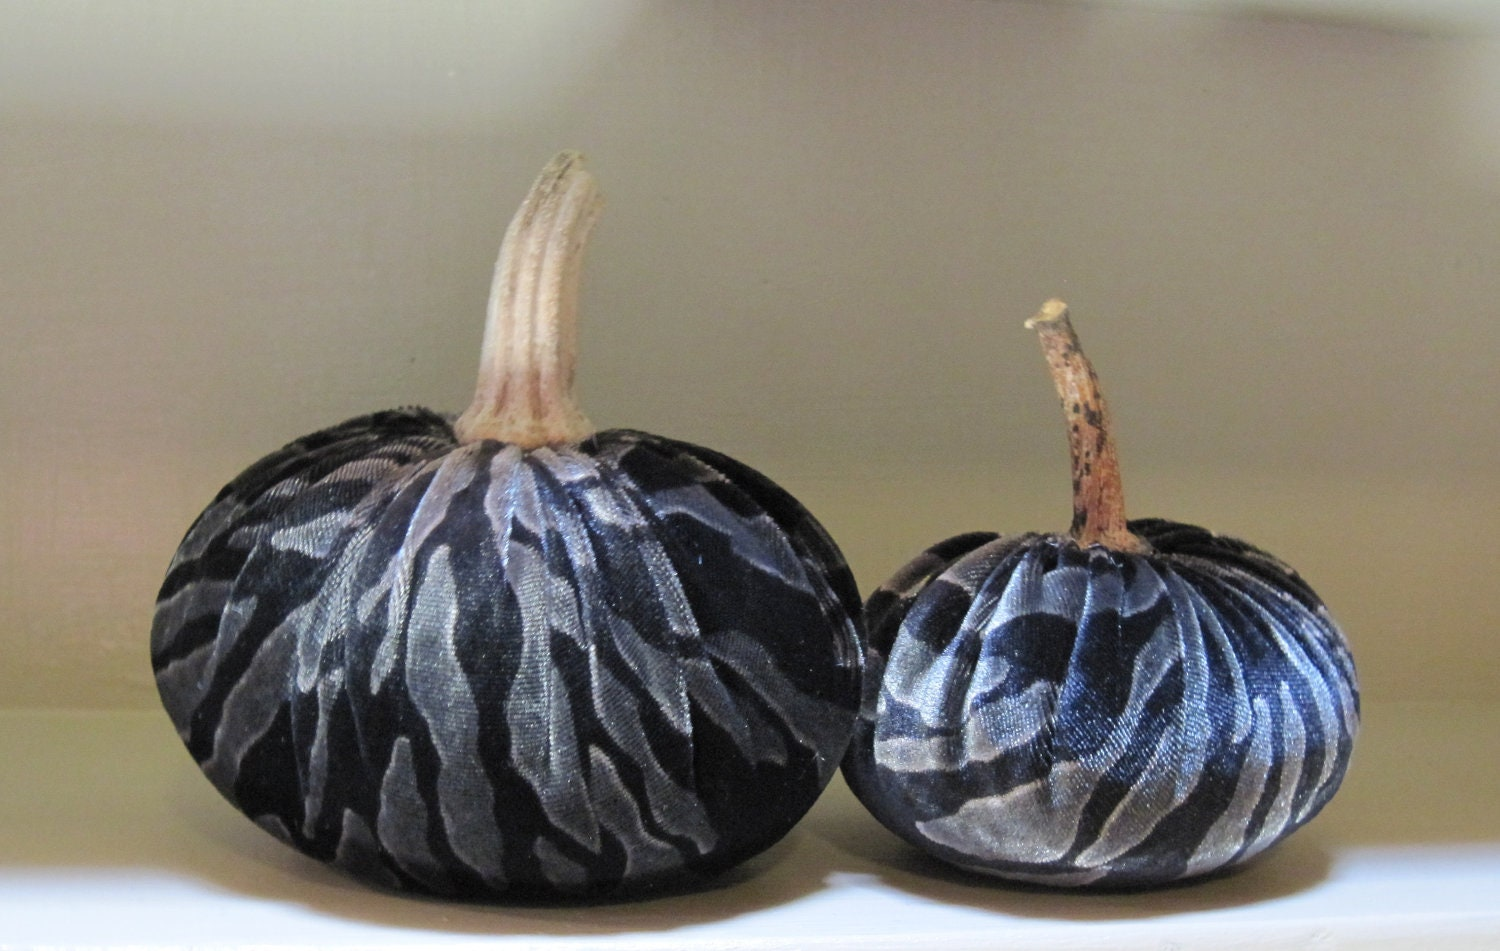 Velvet Pair of Pumpkins - MoosePondFarm